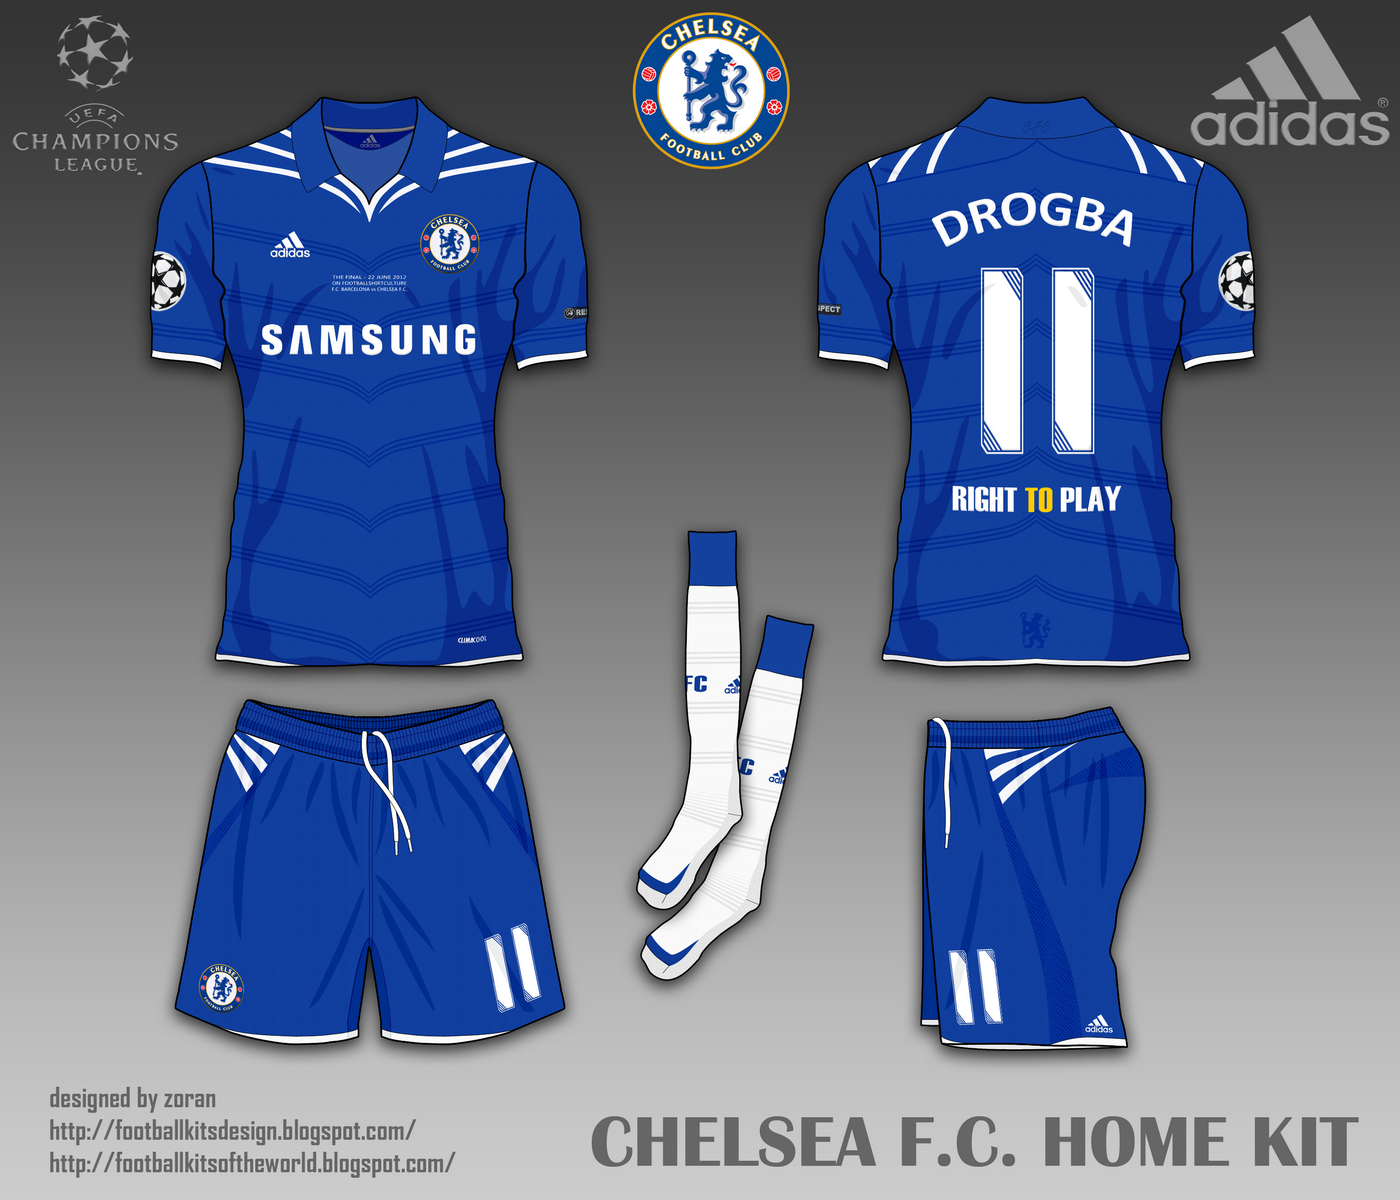 3271e698d8e Chelsea FC Pictures And Videos  football kits design  Chelsea ...